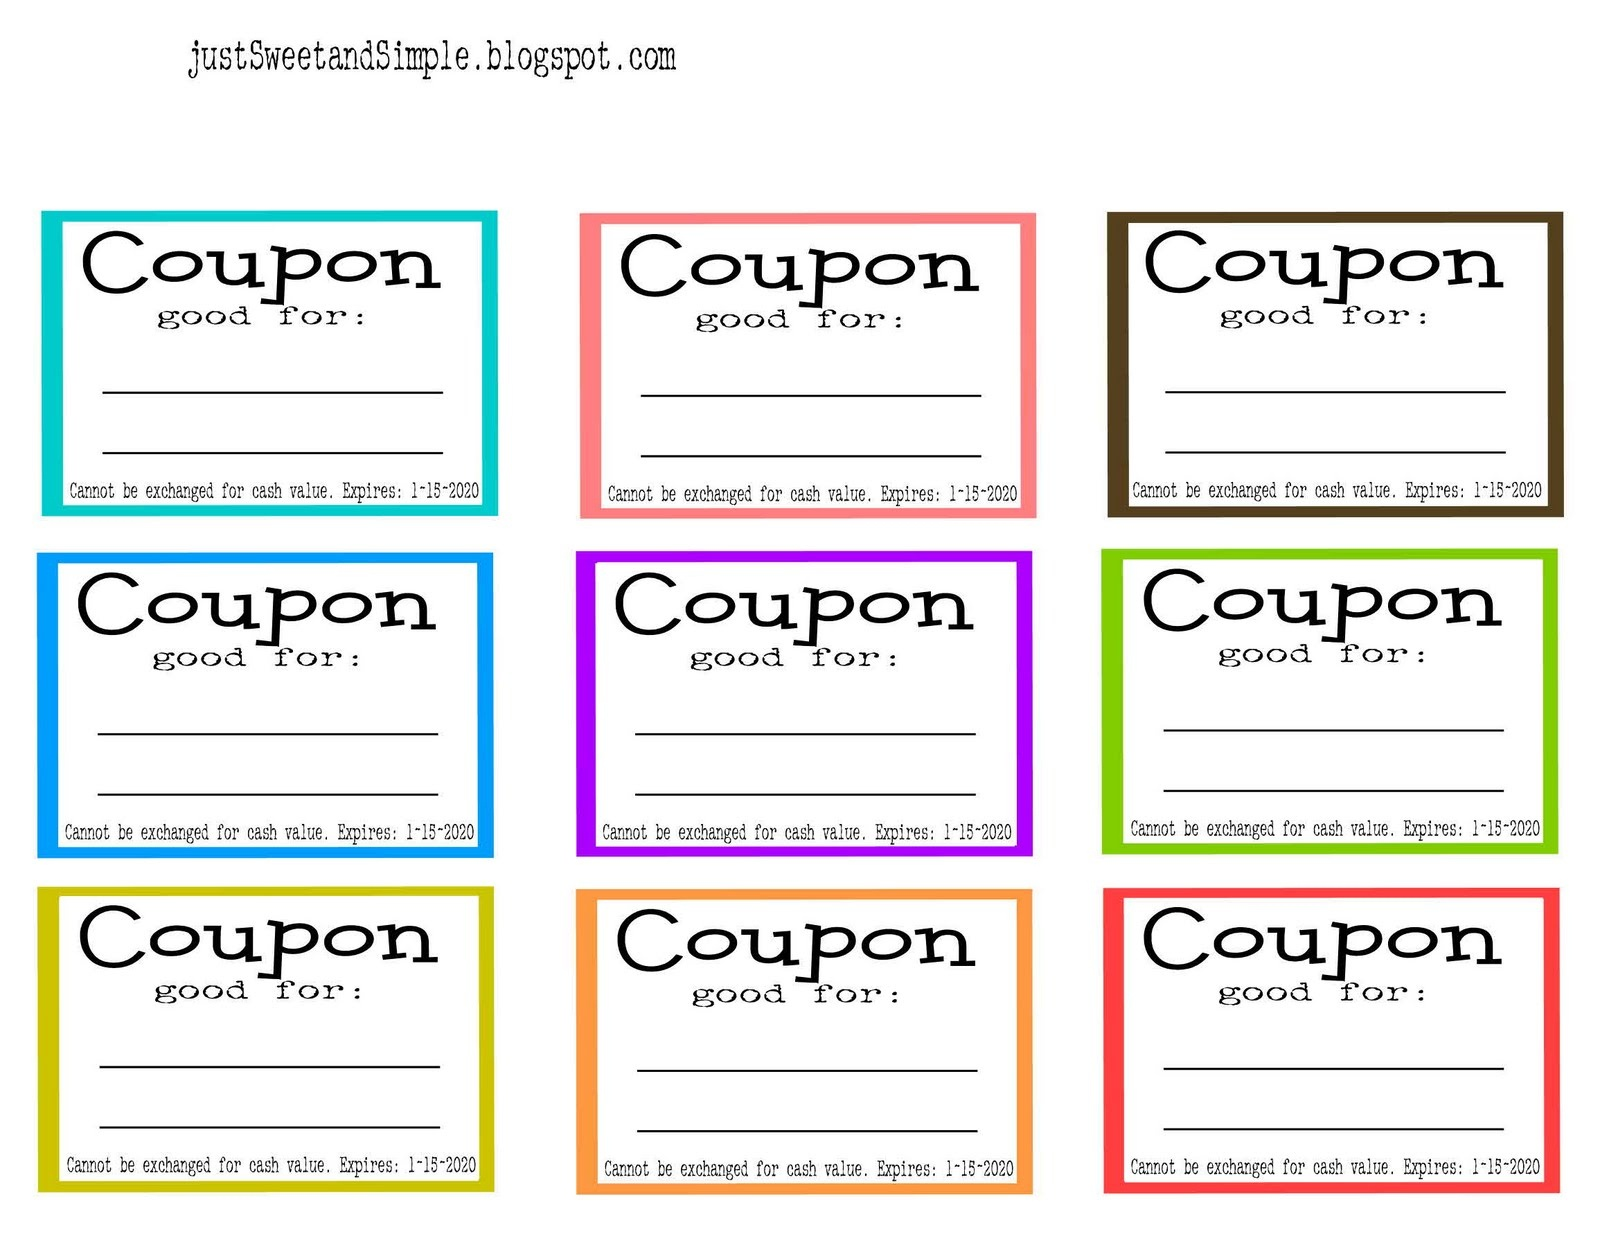 Free Printable Coupon Maker - Demir.iso-Consulting.co - Make Your Own Printable Coupons For Free